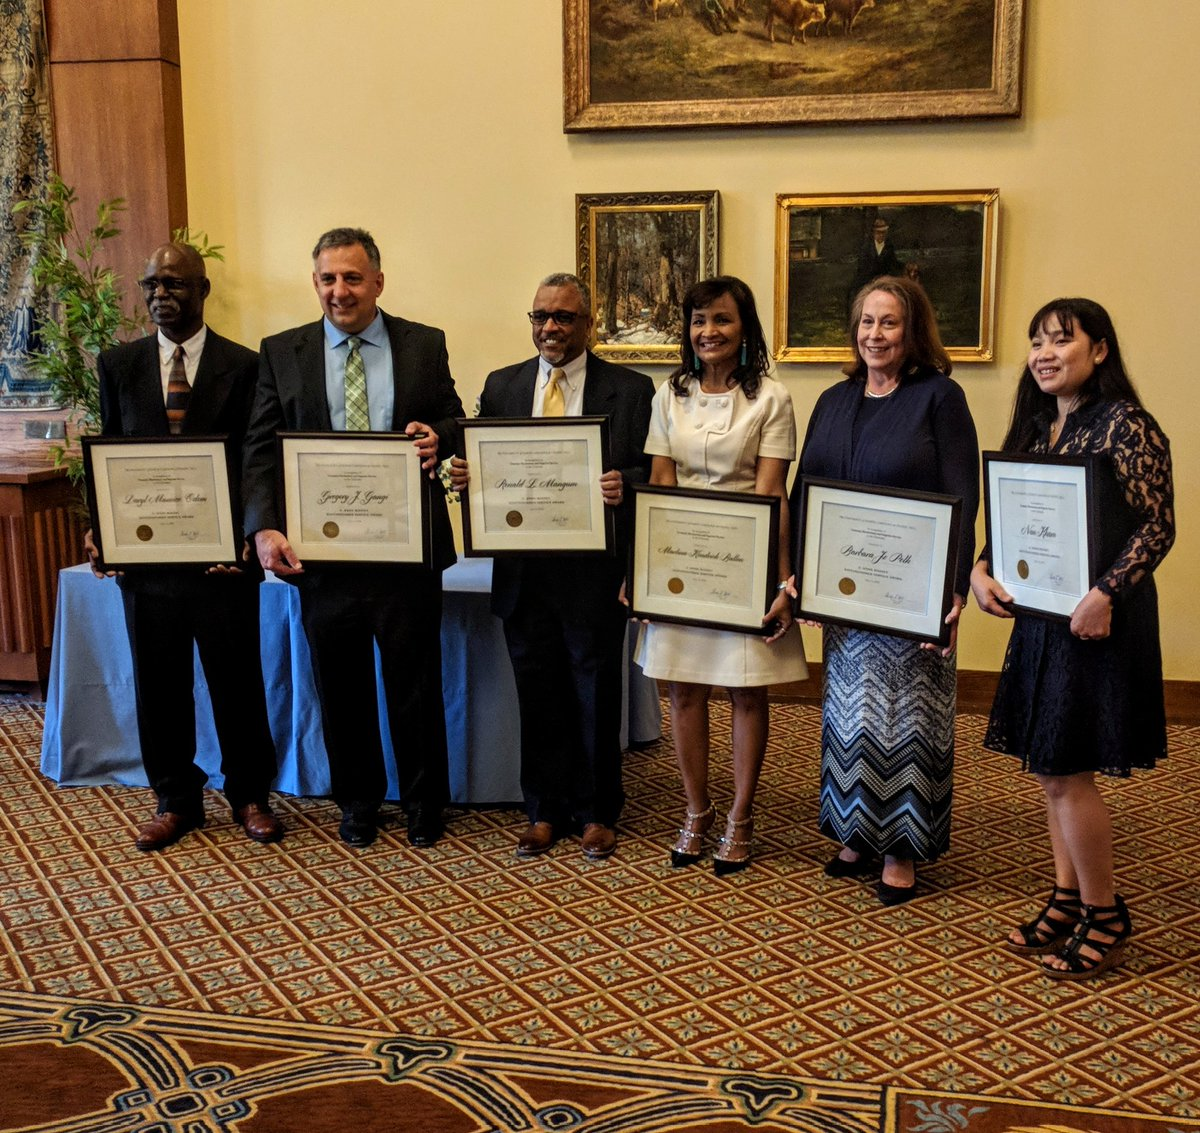 With heartfelt gratitude, we celebrated our 2018 C. Knox Massey Distinguished Service Award winners today! Thank you! https://t.co/bXlEEfKKcx